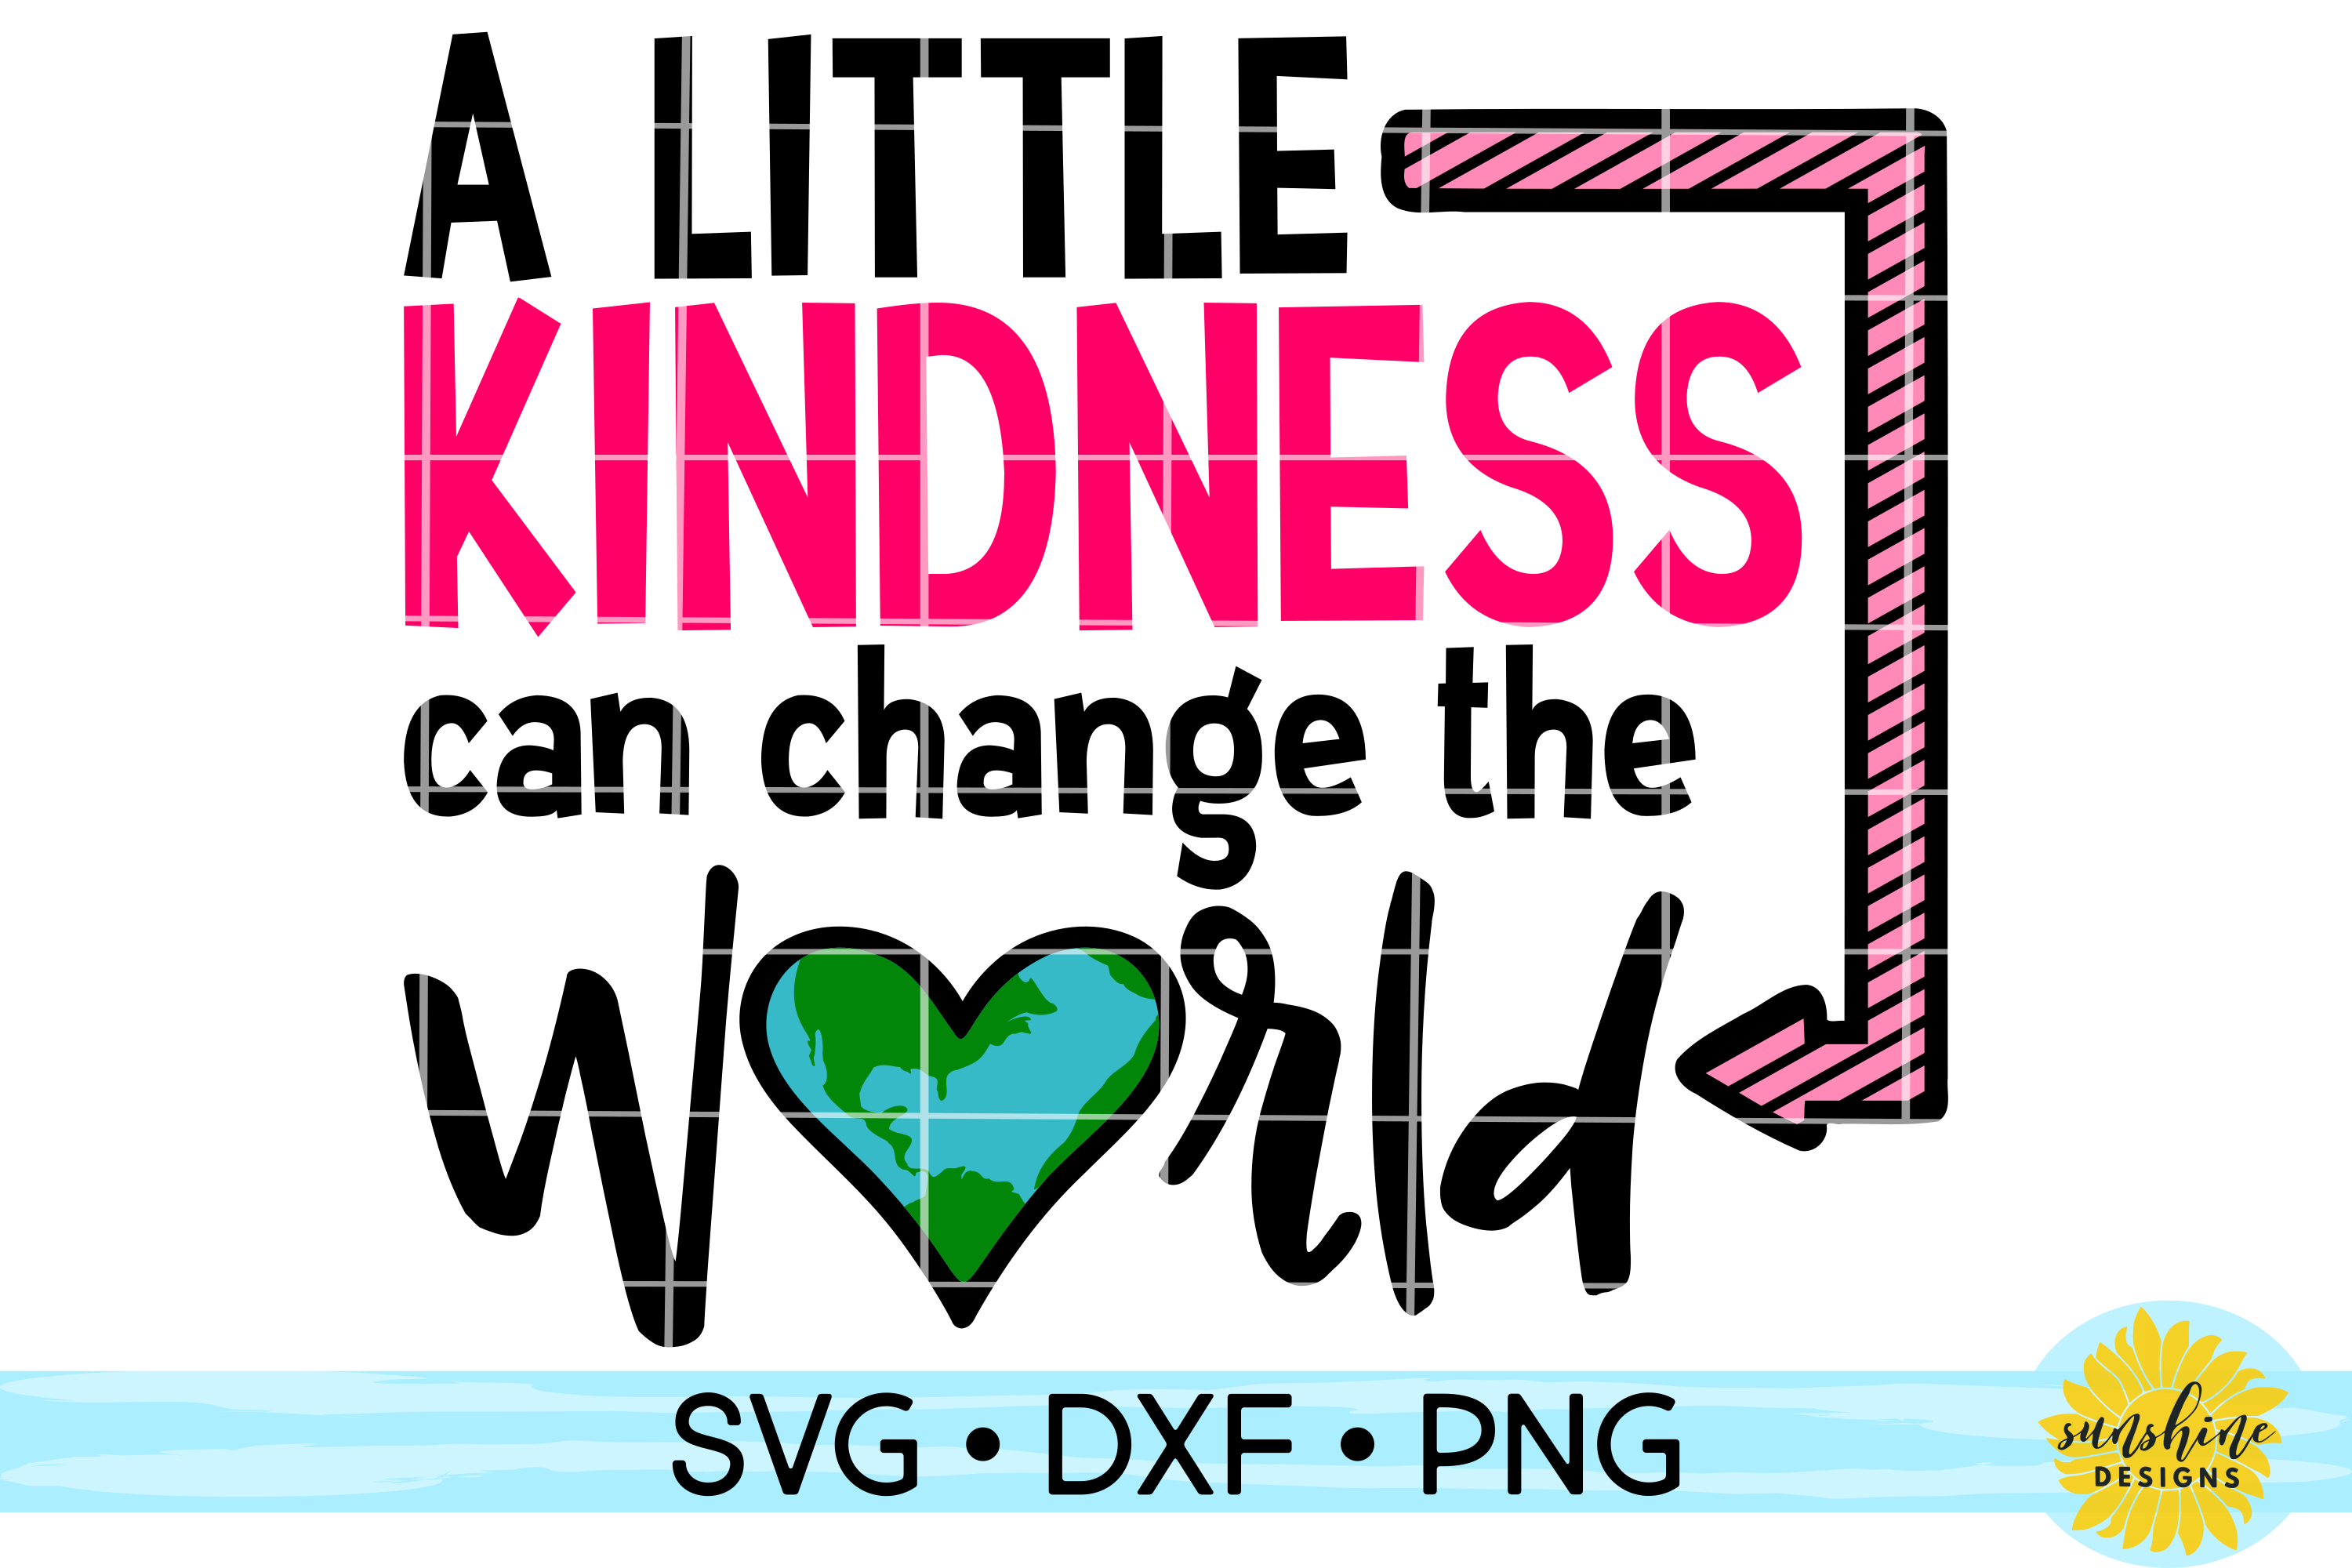 KINDNESS CAN CHANGE THE WORLD | ANTI-BULLYING | SVG DXF PNG example image 1